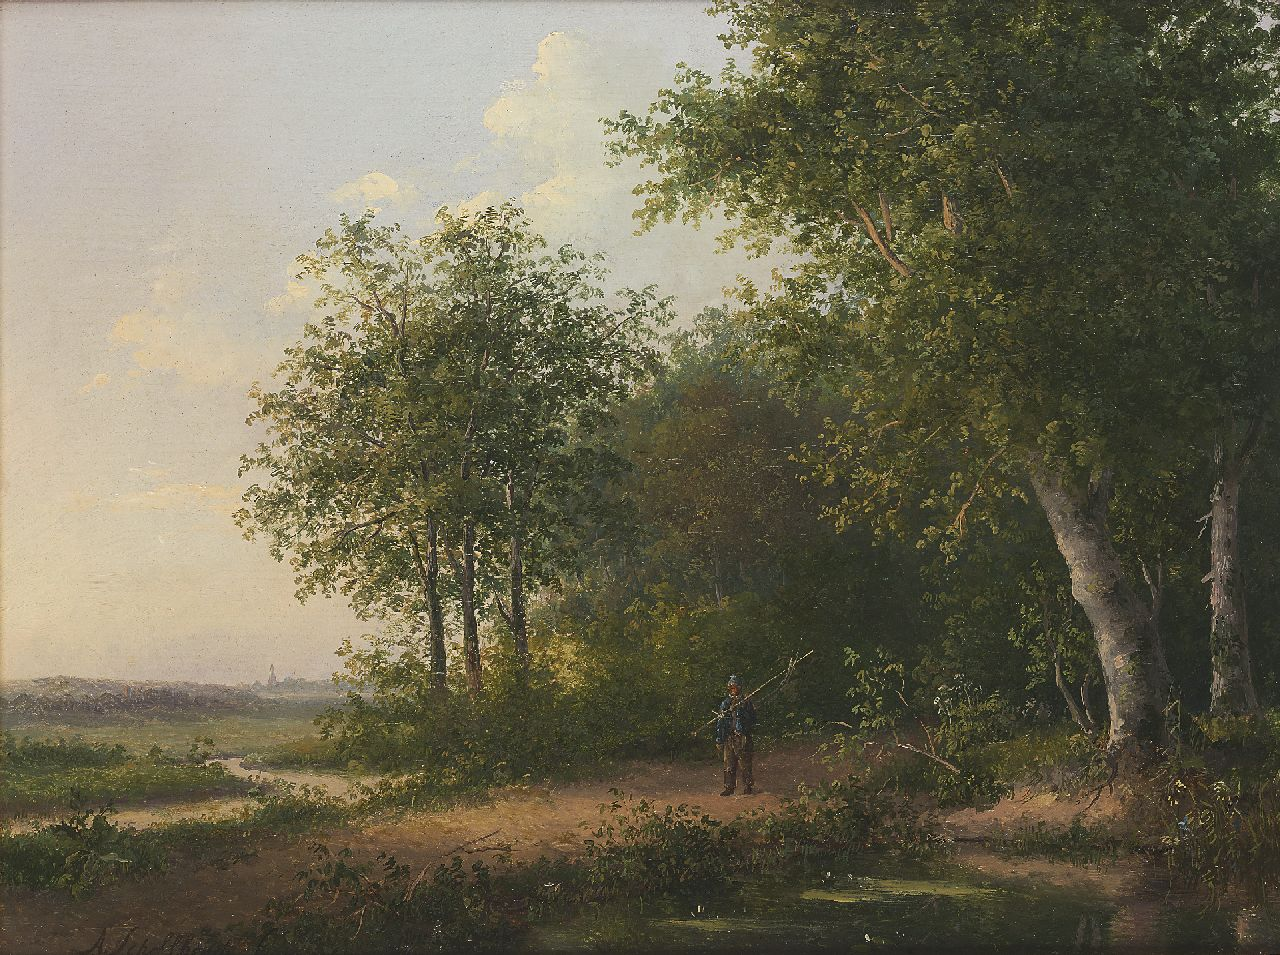 Schelfhout A.  | Andreas Schelfhout | Paintings offered for sale | Fisherman in a forest, oil on panel 26.0 x 34.5 cm, signed l.l. and painted ca. 1822